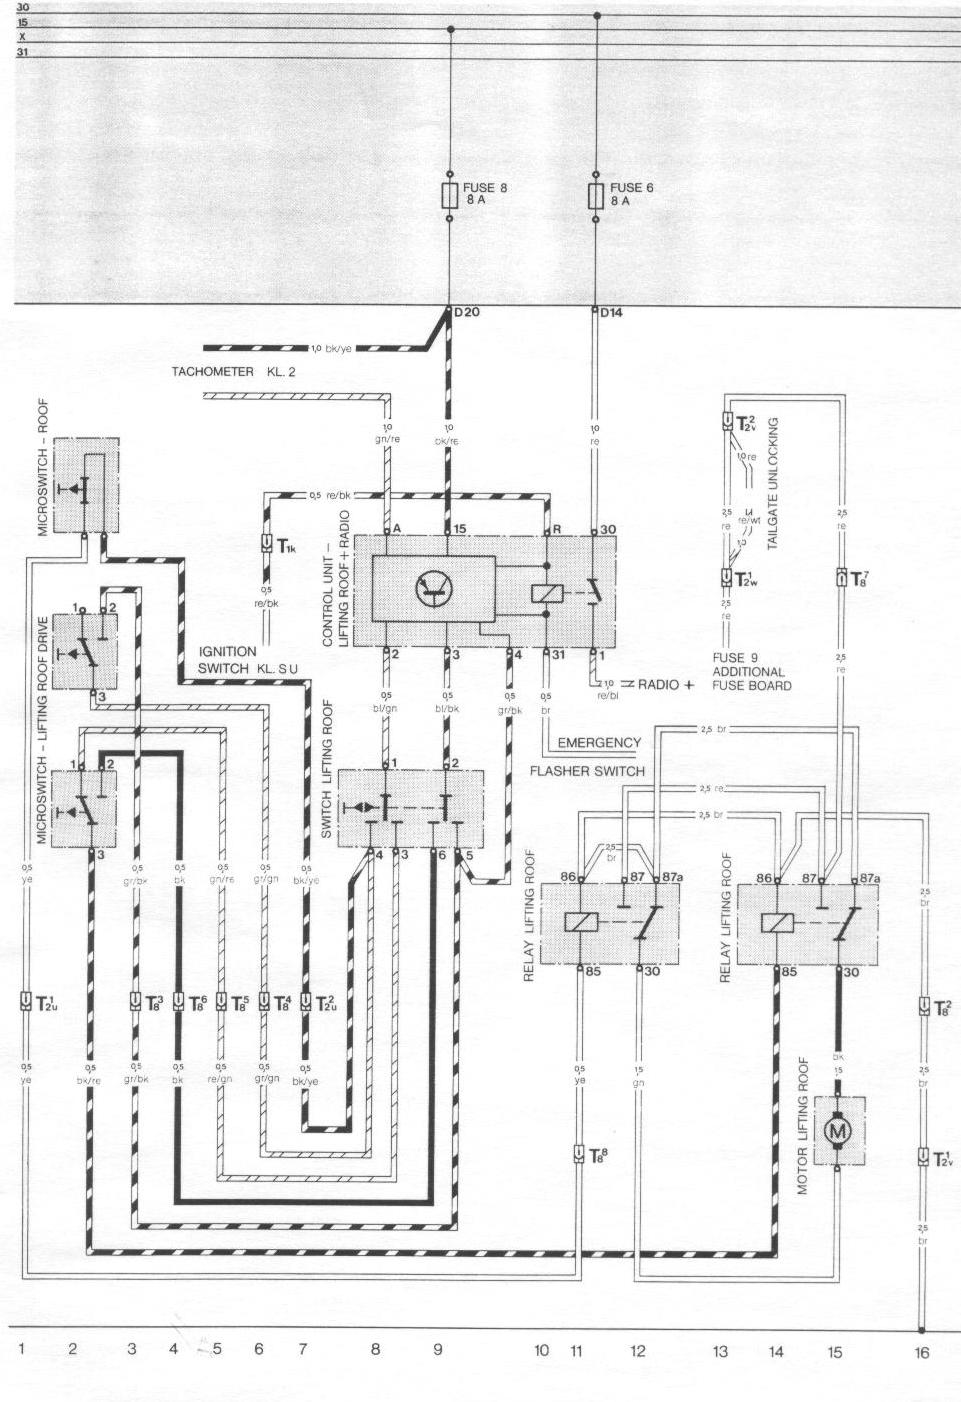 84 944 fuse box diagram